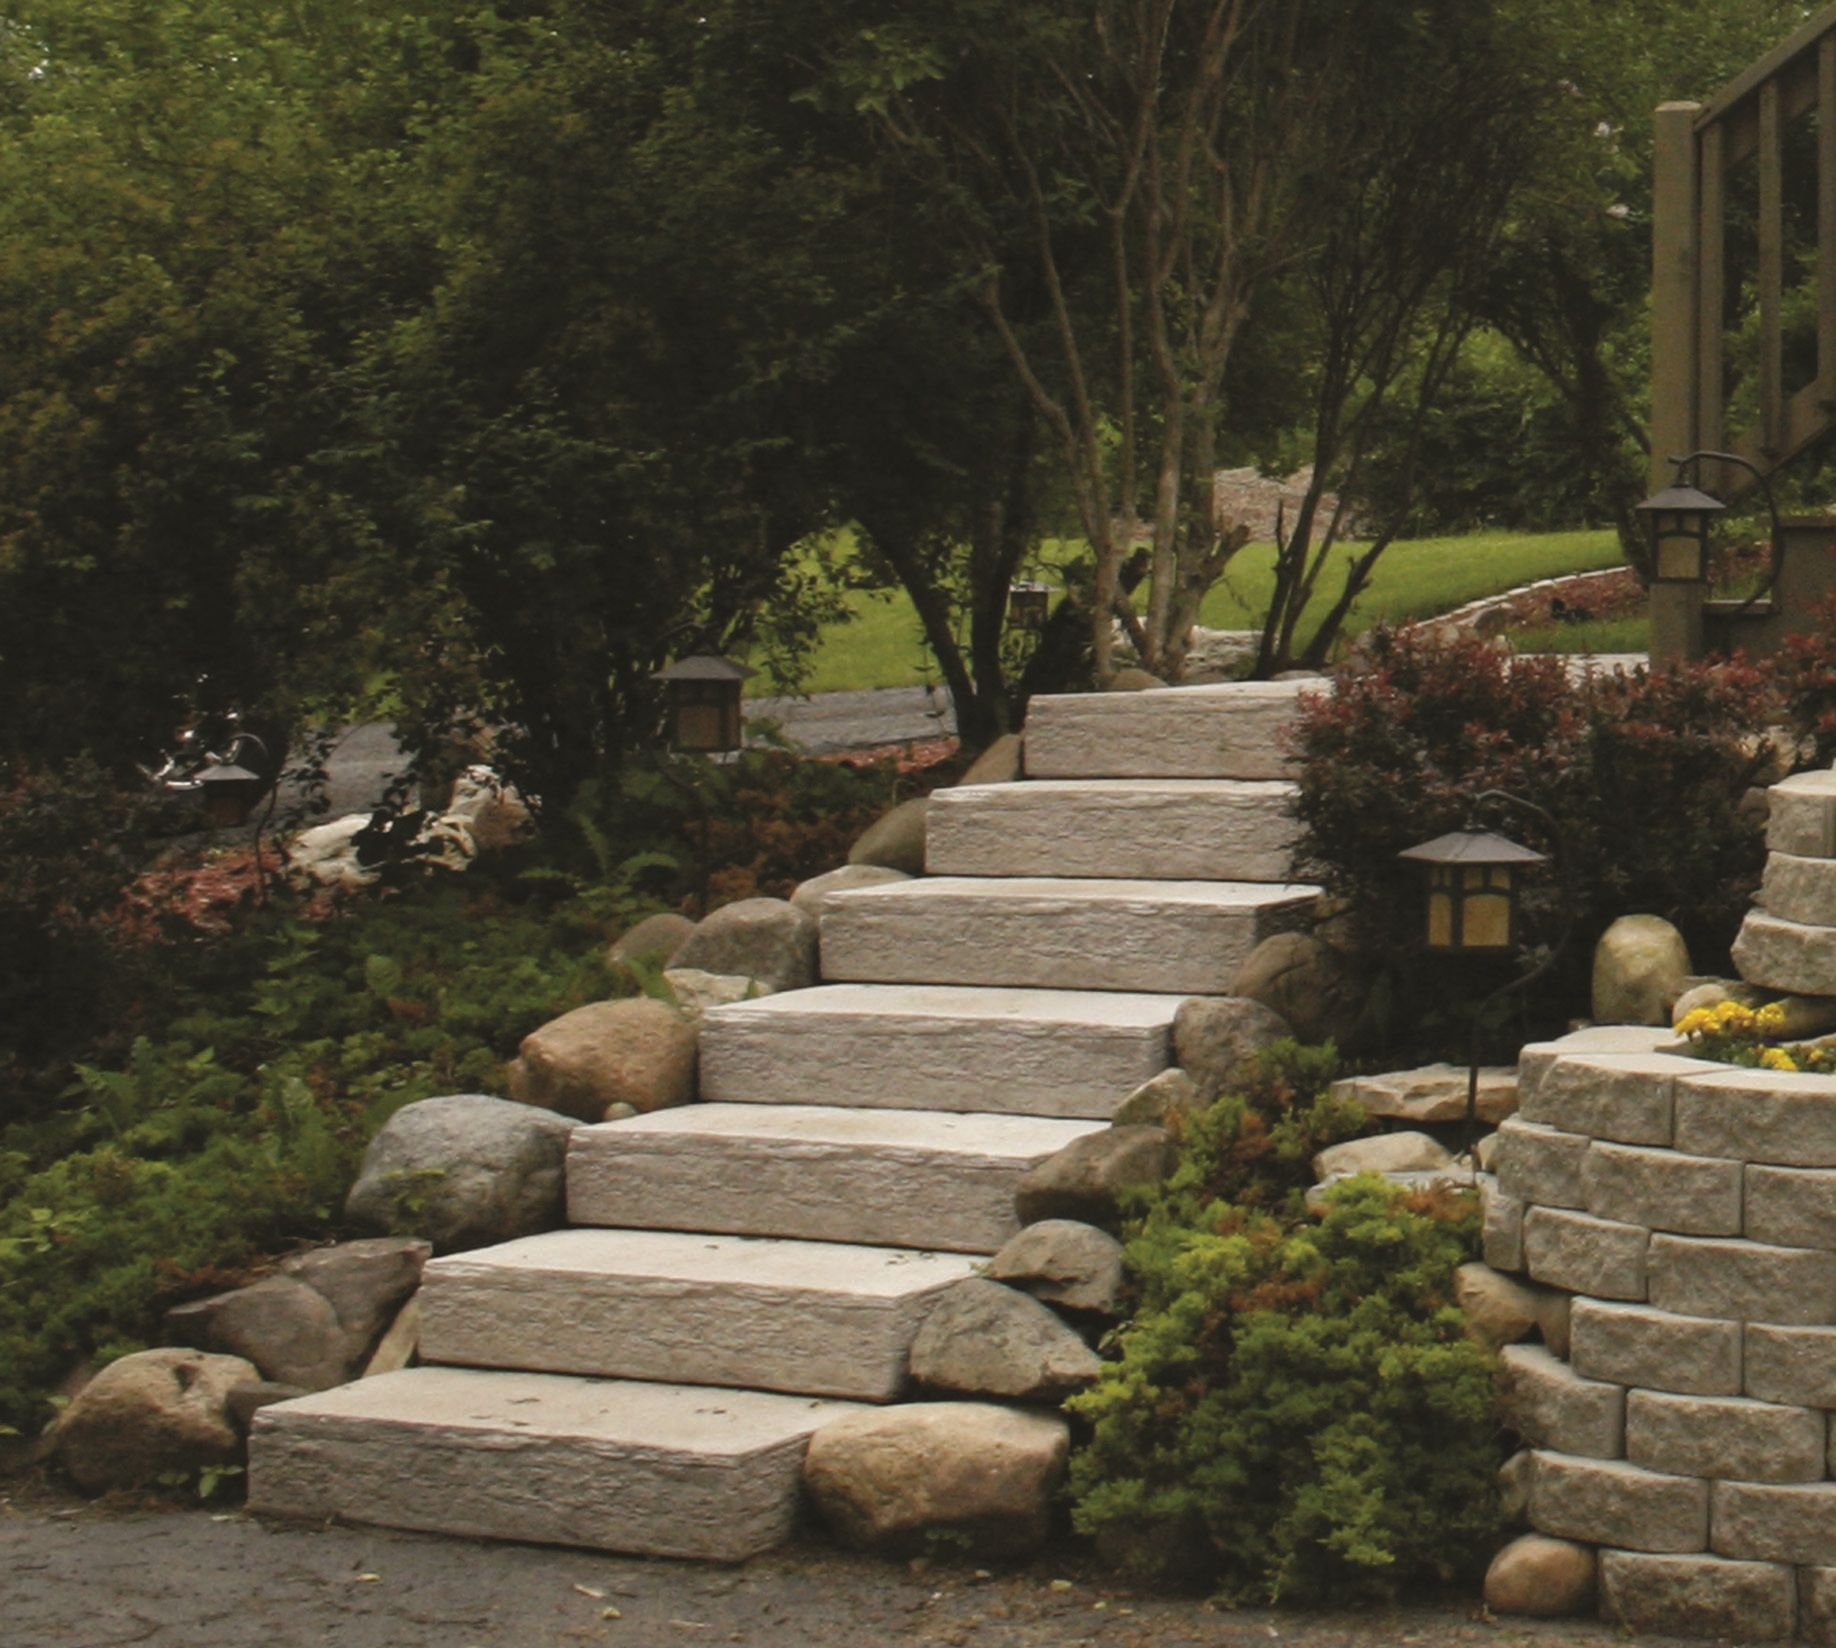 Backyard Steps Ideas: RockStep Is The Smarter Alternative To Natural Stone Steps